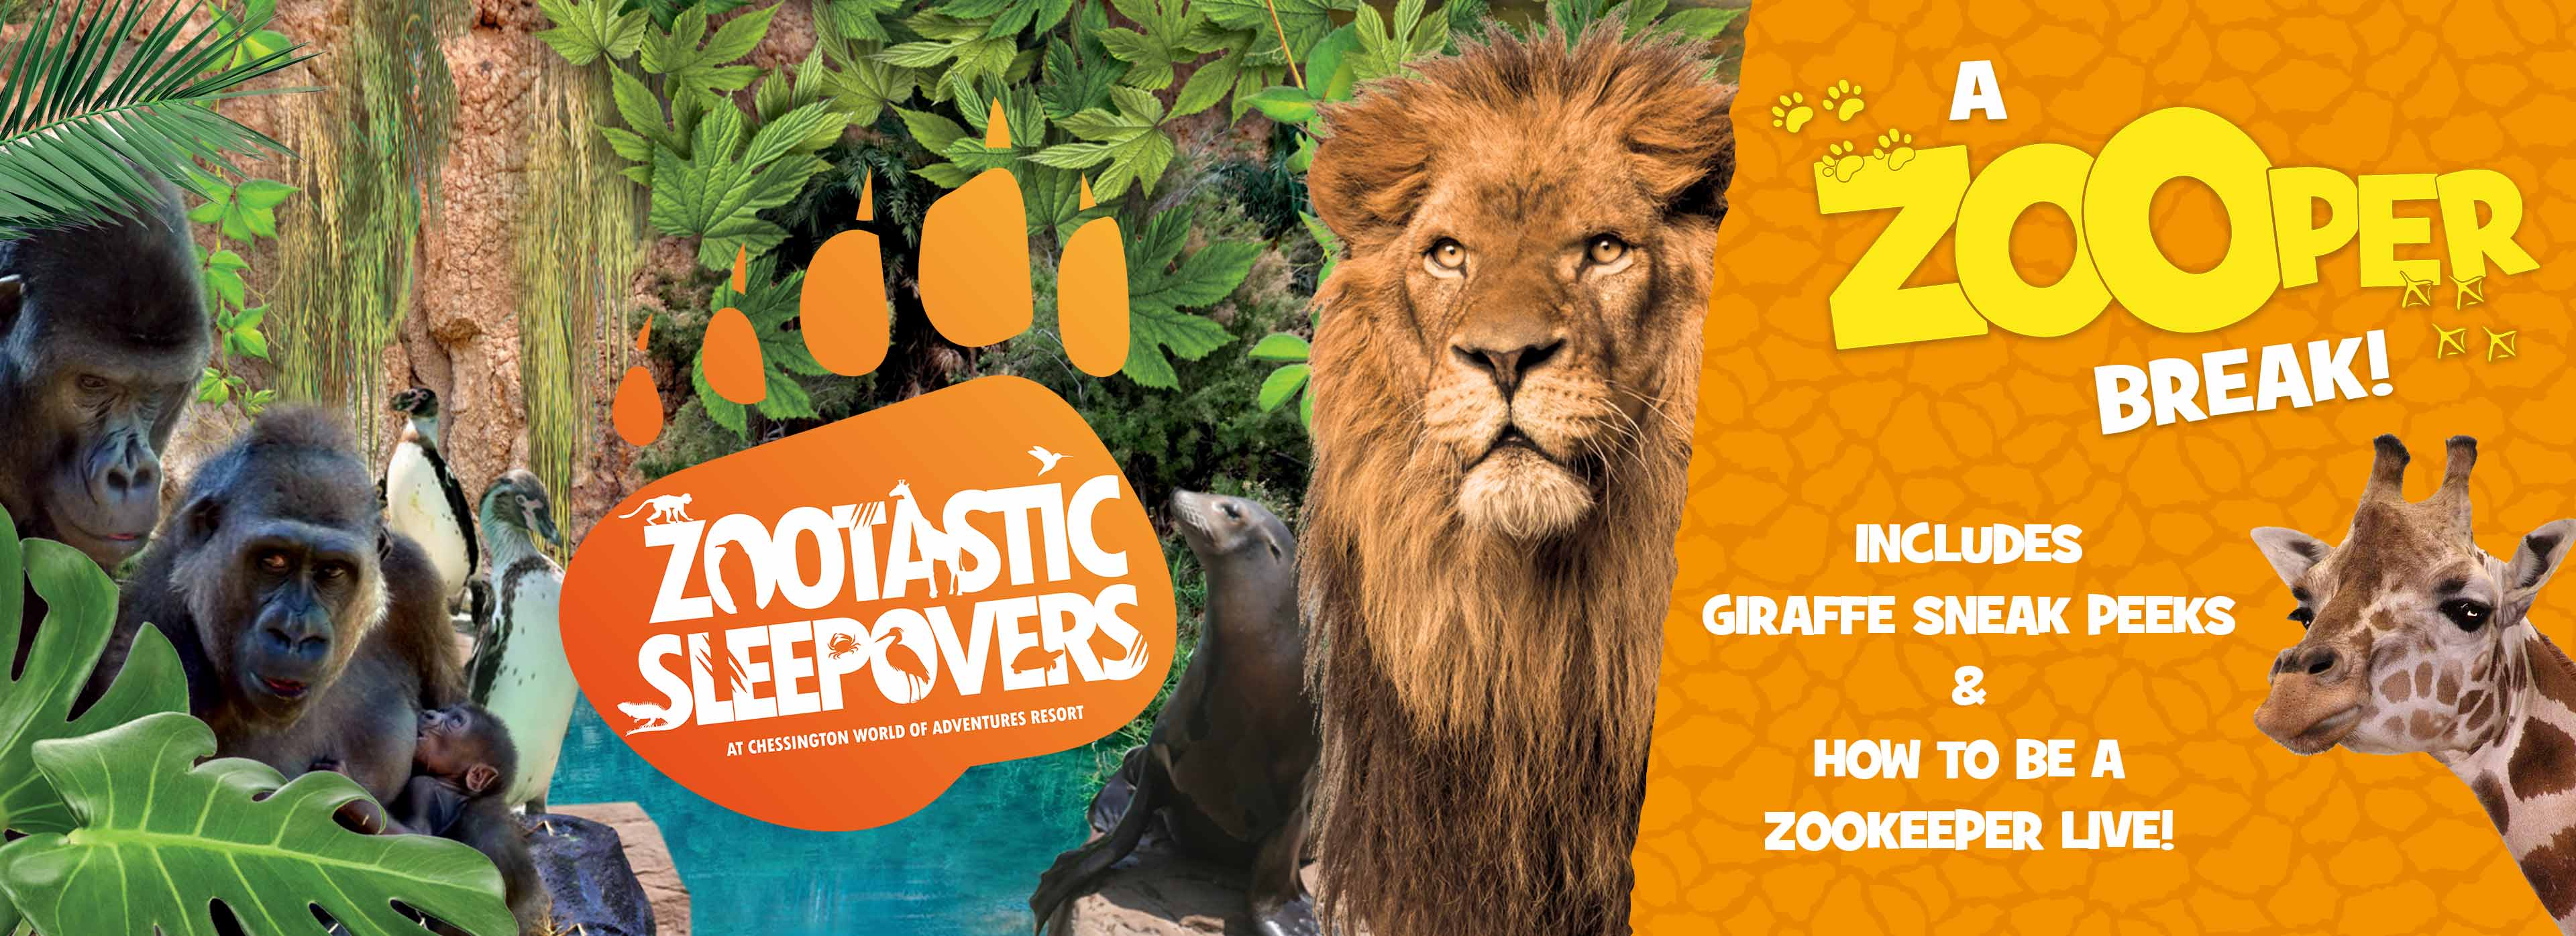 Zootastic Sleepovers at the Chessington World of Adventures Resort